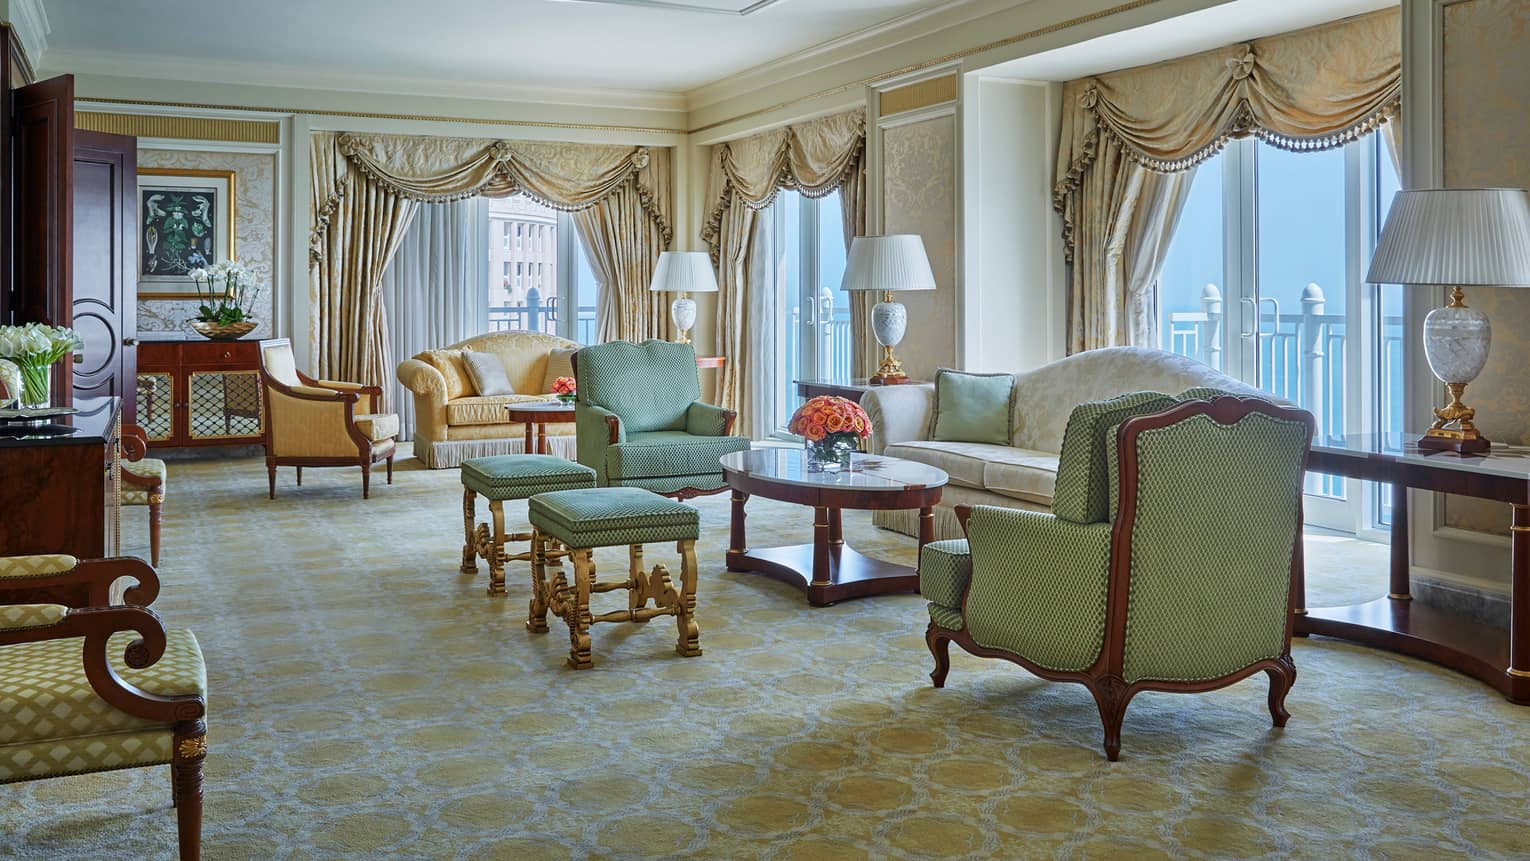 State Suite large living room with gold accents, antique-style sofas, curtains